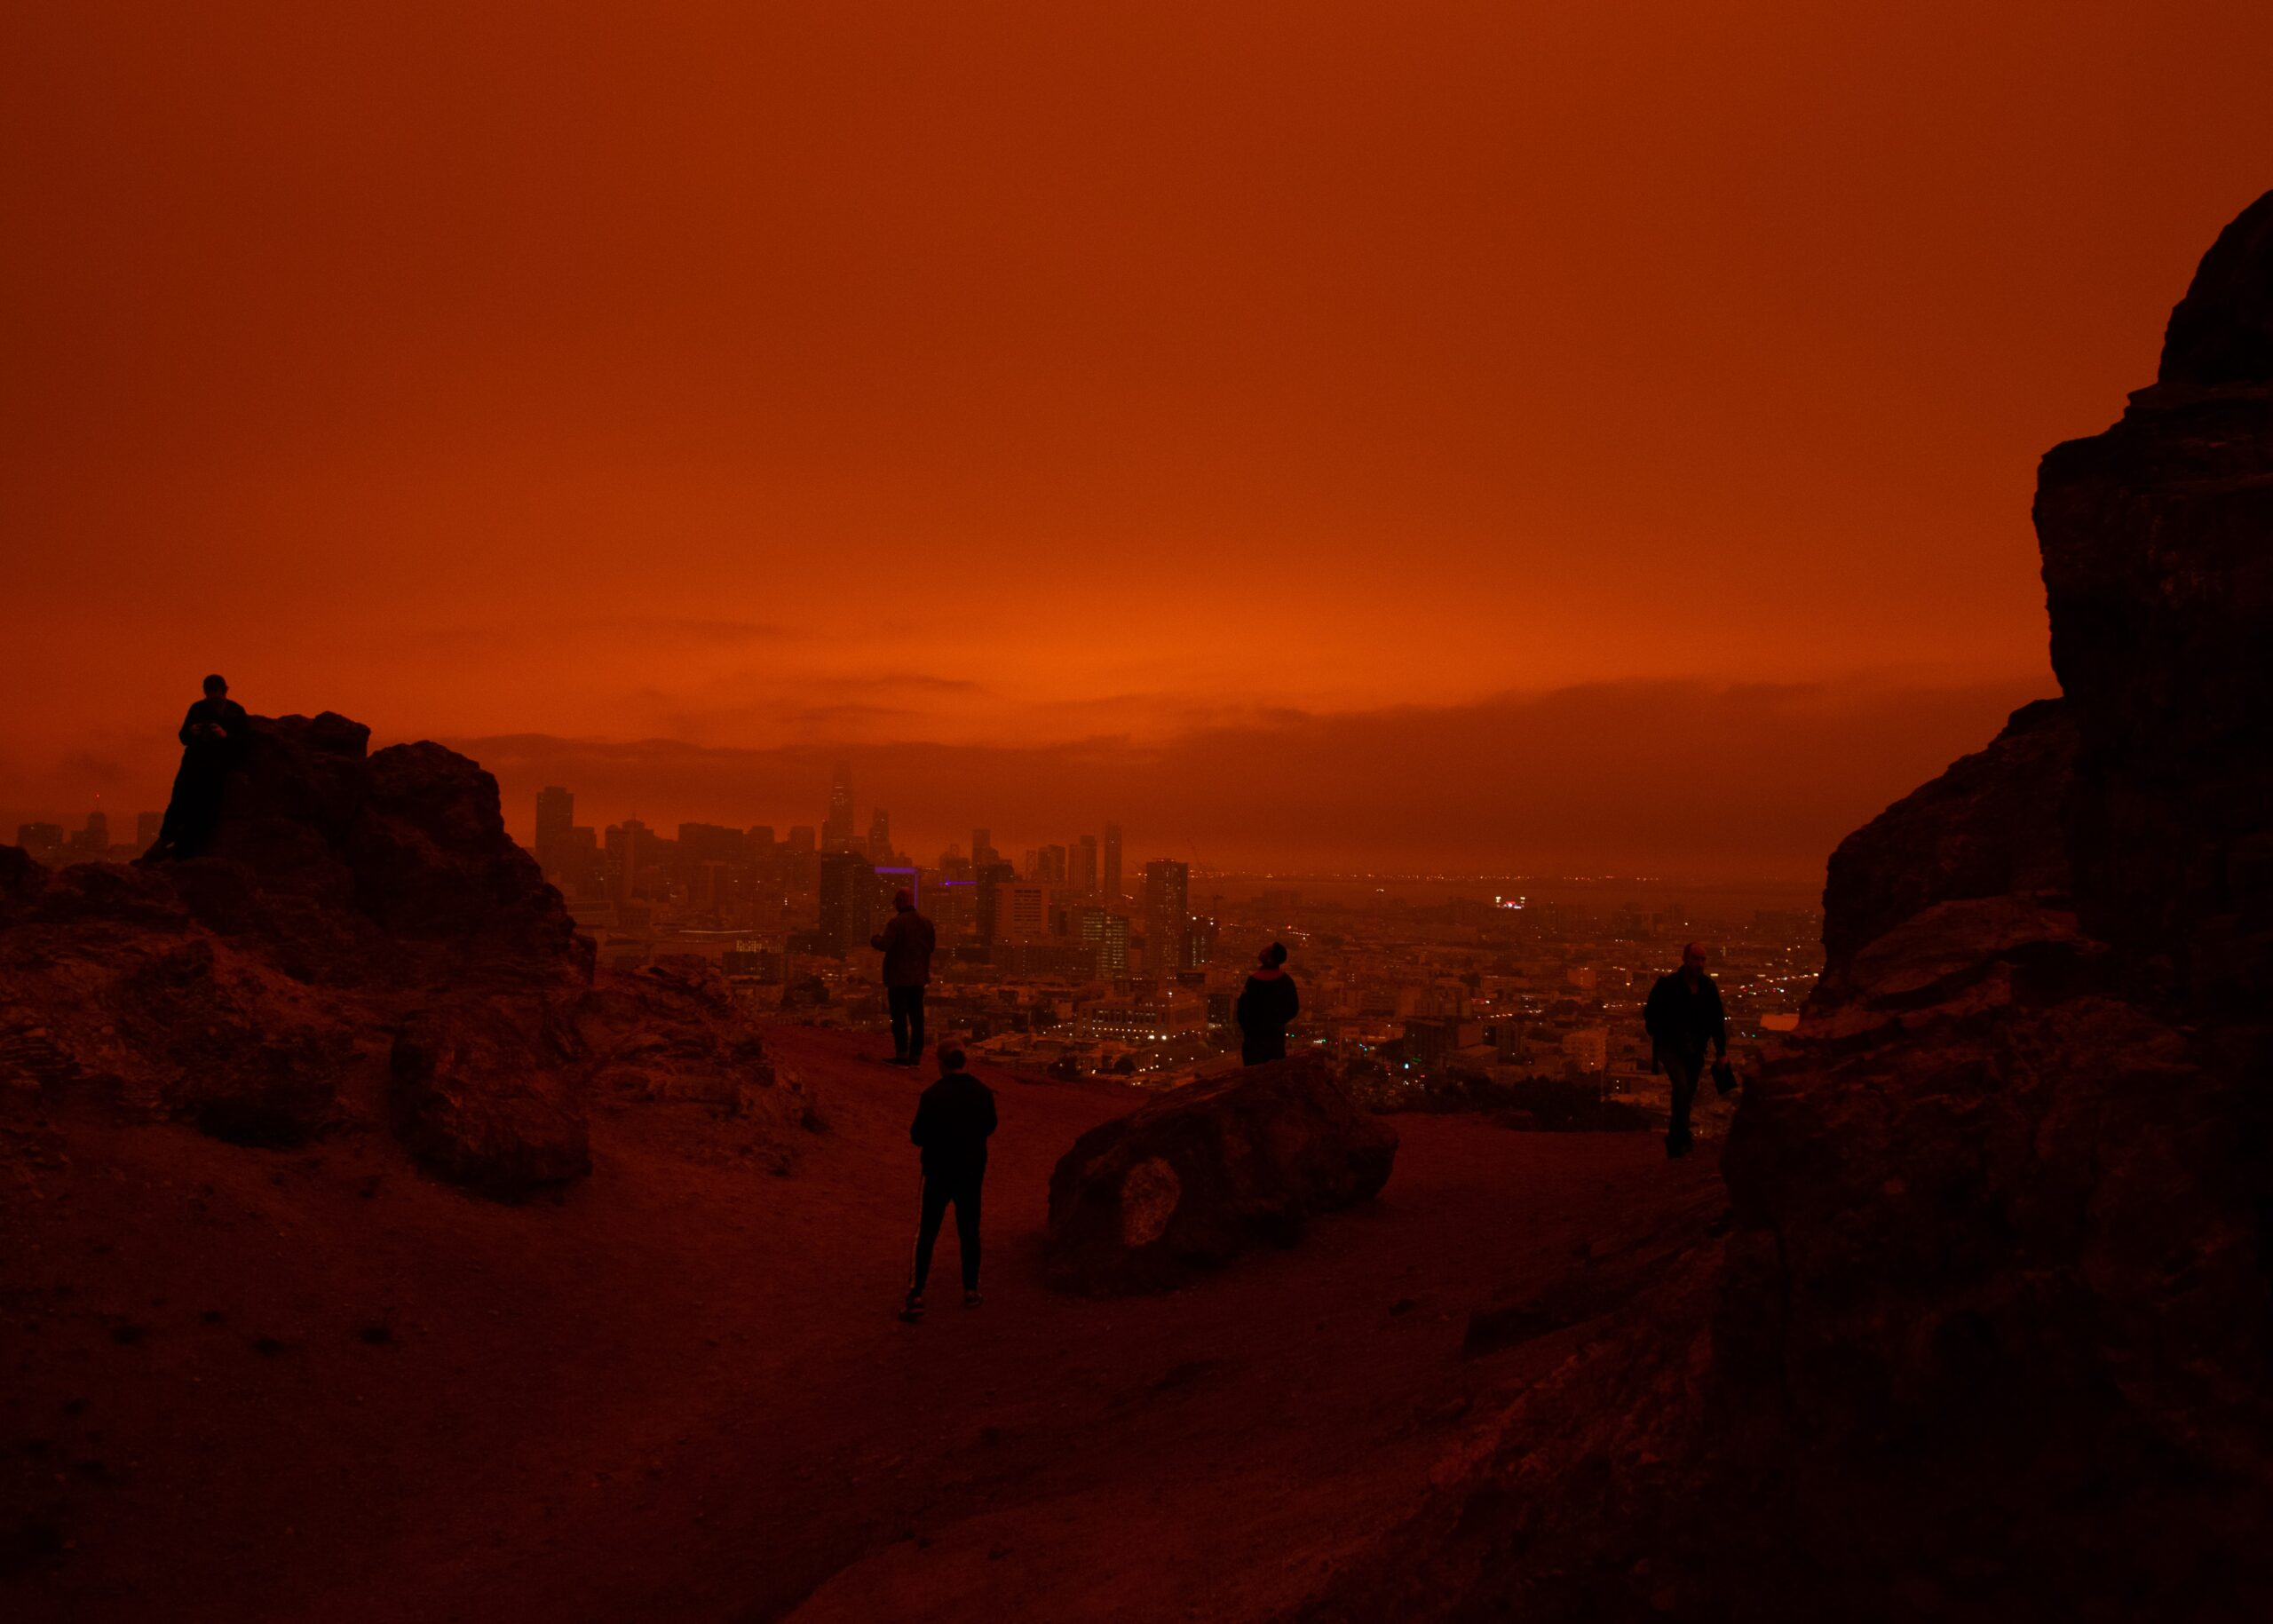 Image: Apocalyptic films have lulled us into a false sense of security about climatechange